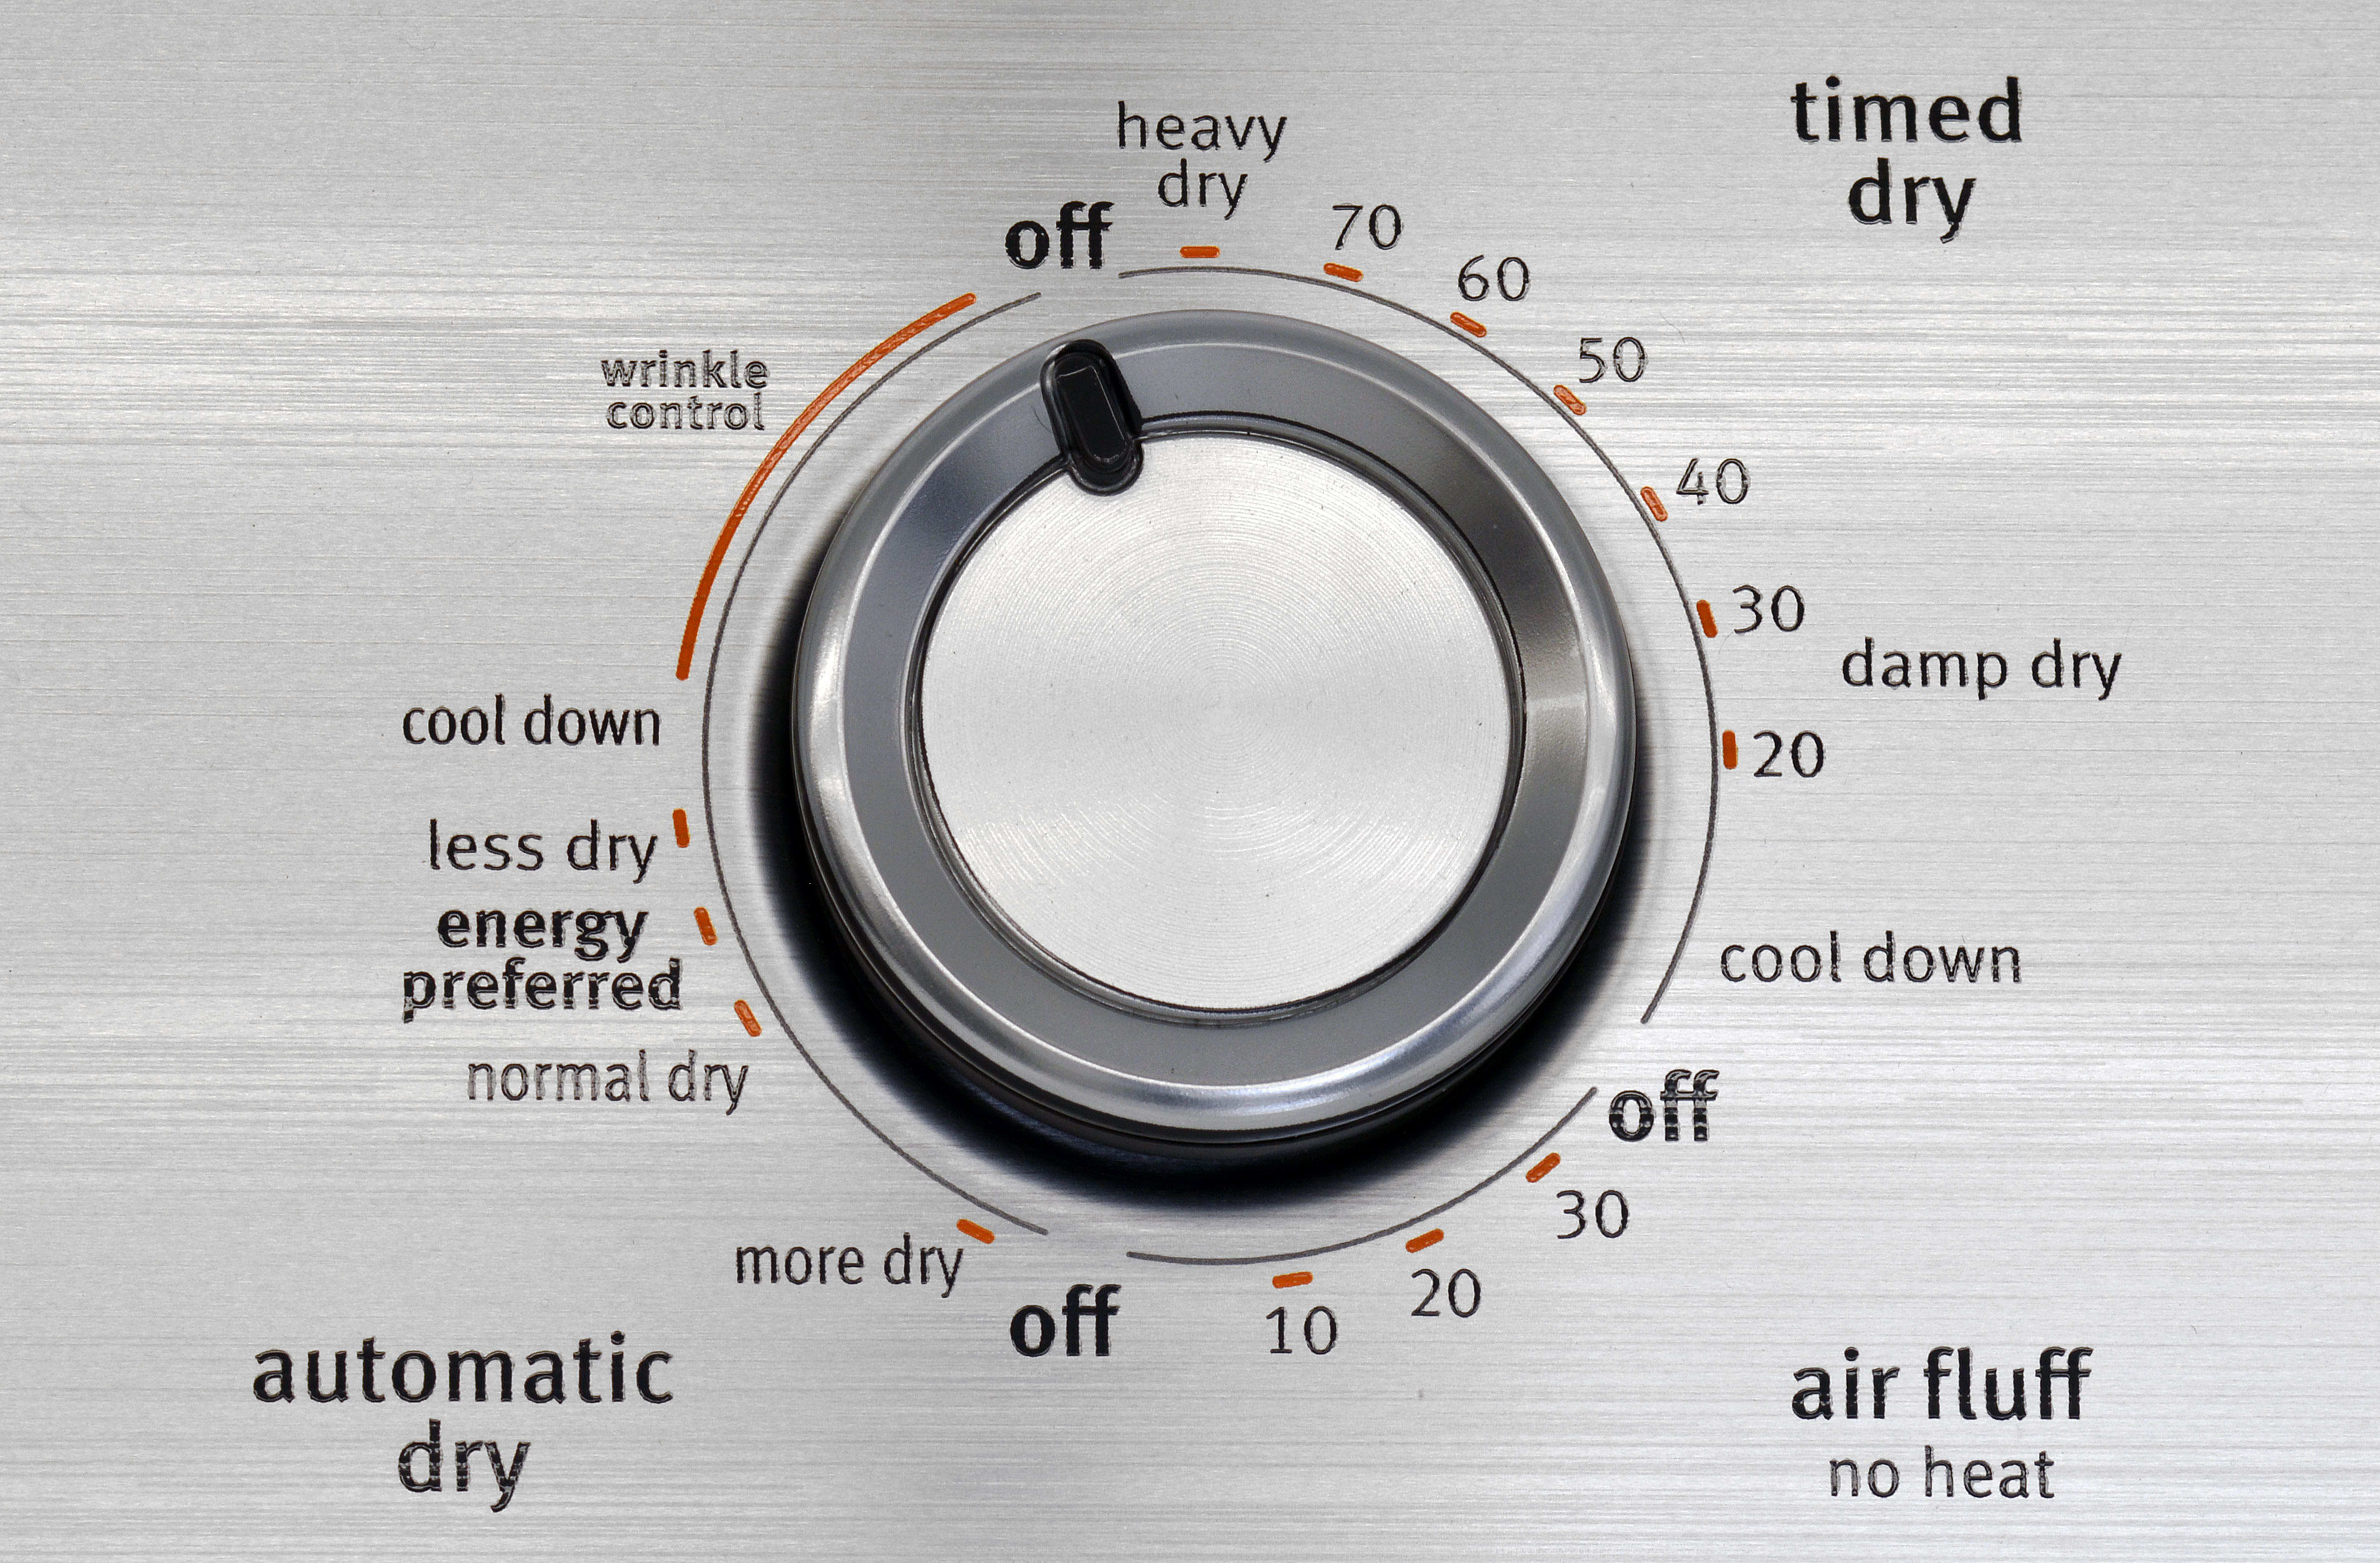 Don't expect precise cycle selection when dealing with crank timers like the one found on the Maytag Centennial MEDC215EW.